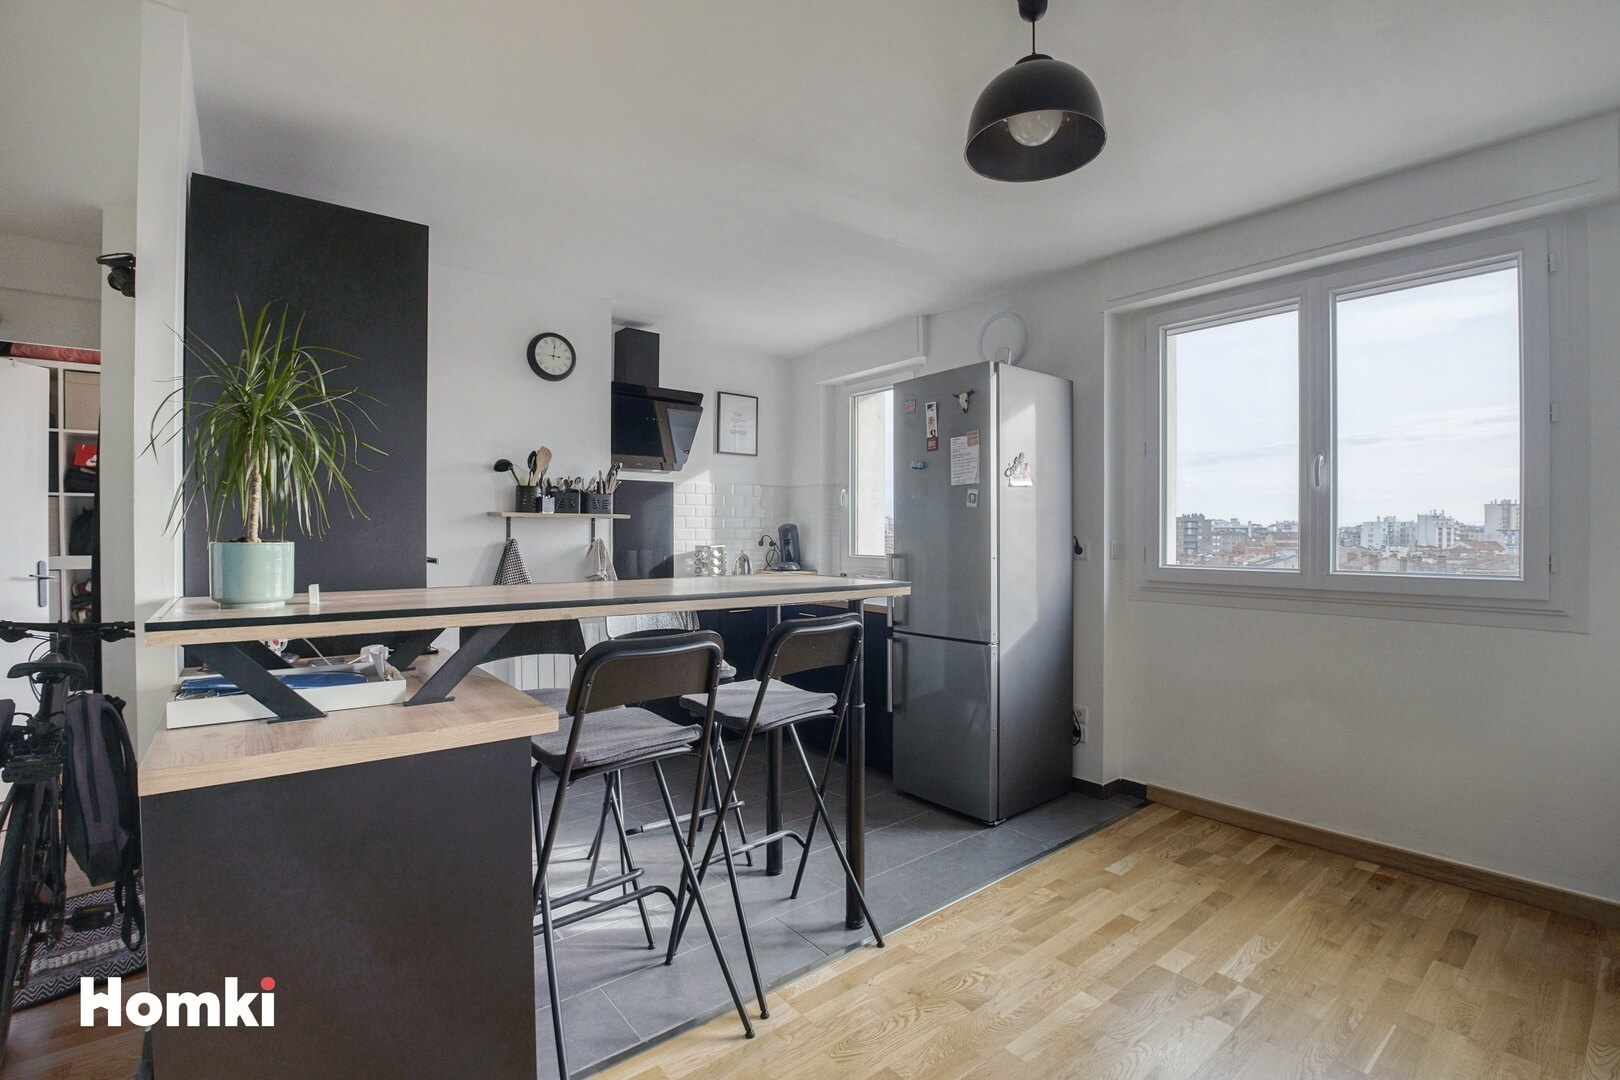 Homki - Vente Appartement  de 52.0 m² à Toulouse 31000